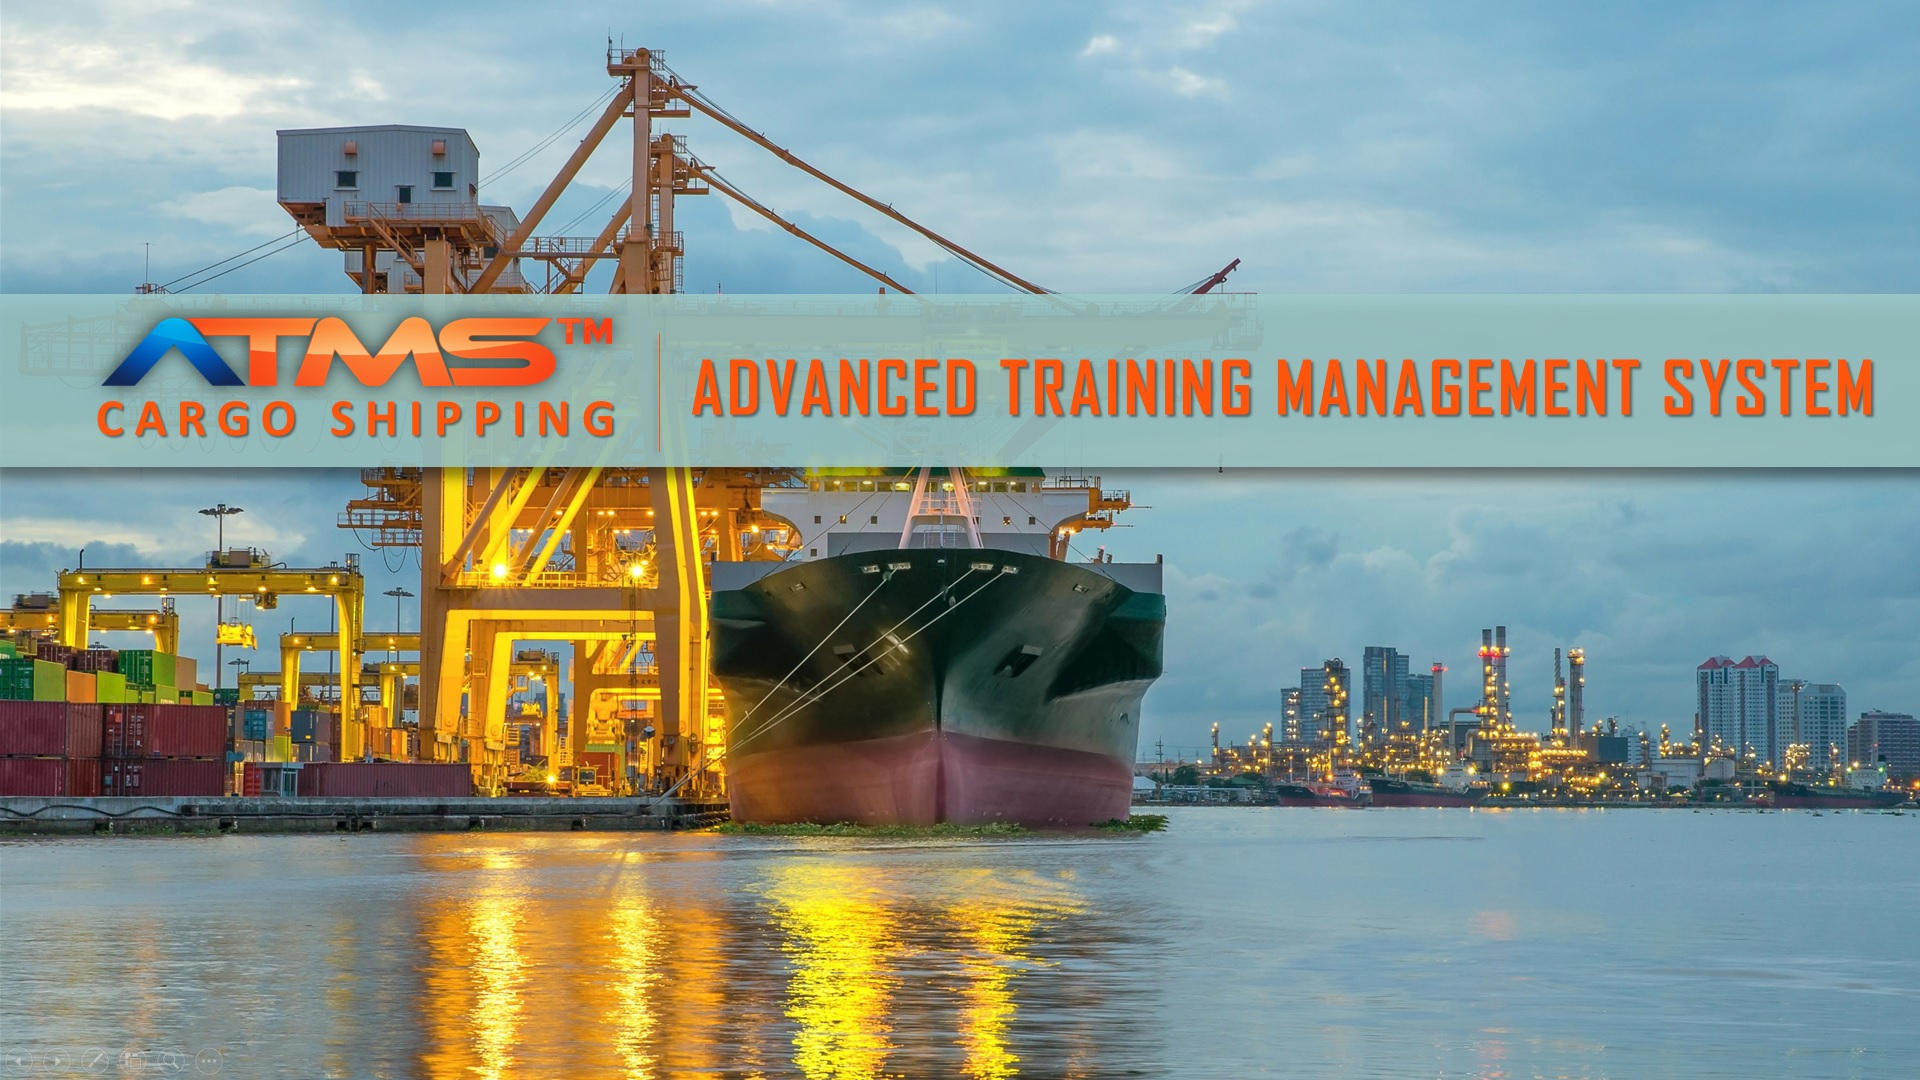 Cargo-Ship-Training-Systems-Slide-1